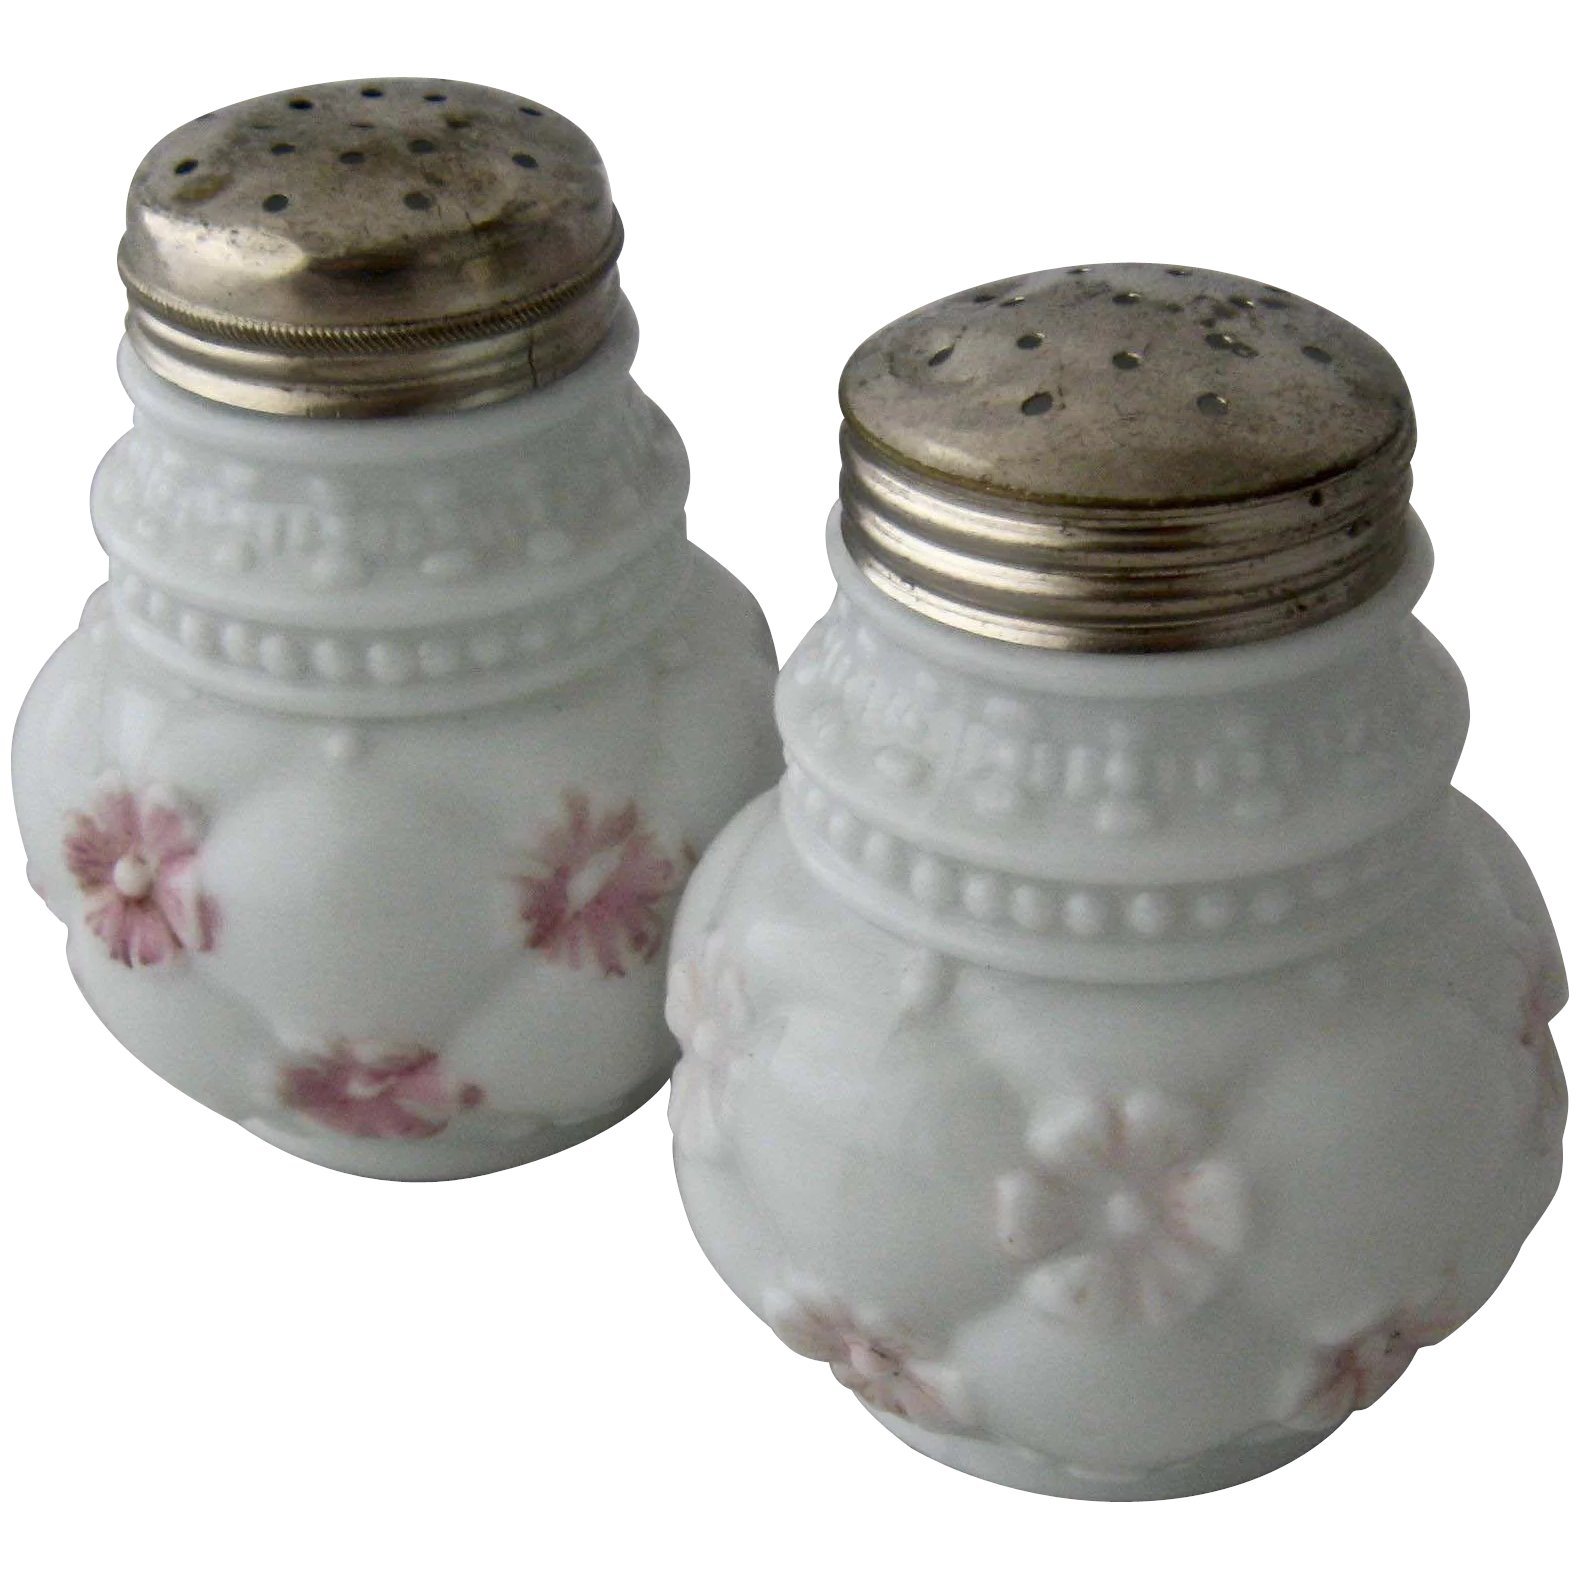 Early 1900s Consolidated Glass Painted Salt Pepper Shakers Mendocino Vintage Ruby Lane